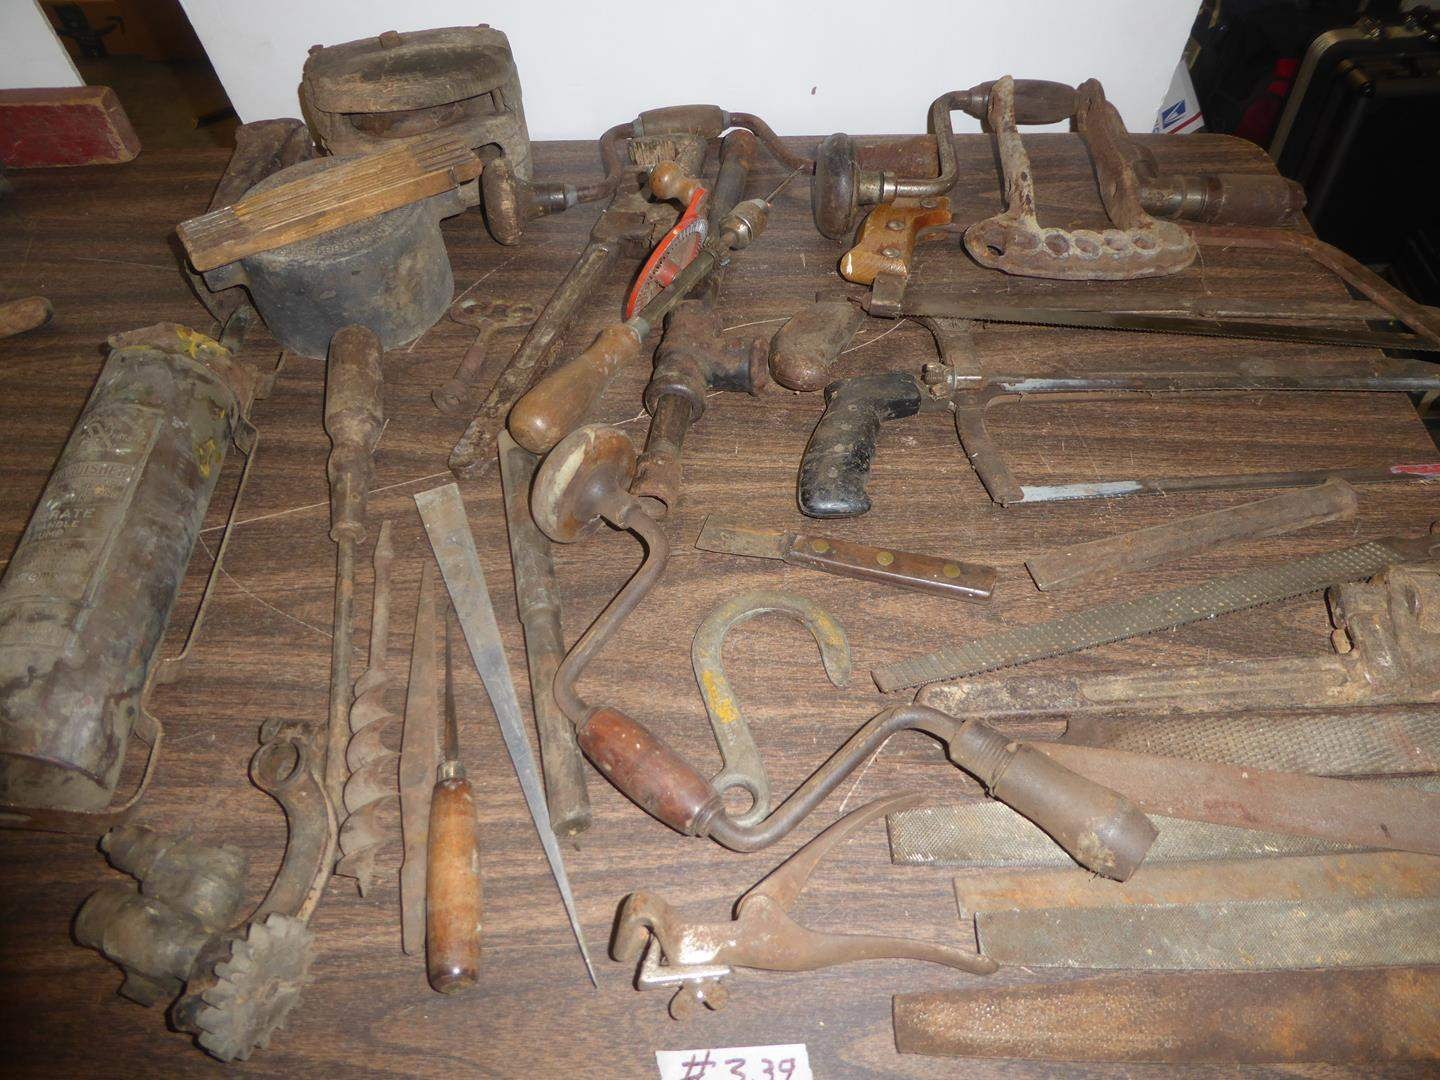 Lot # 339 - Vintage Fire Extinguisher, Crouse-Hinds Condulet, Pulley & Vintage Tools (main image)